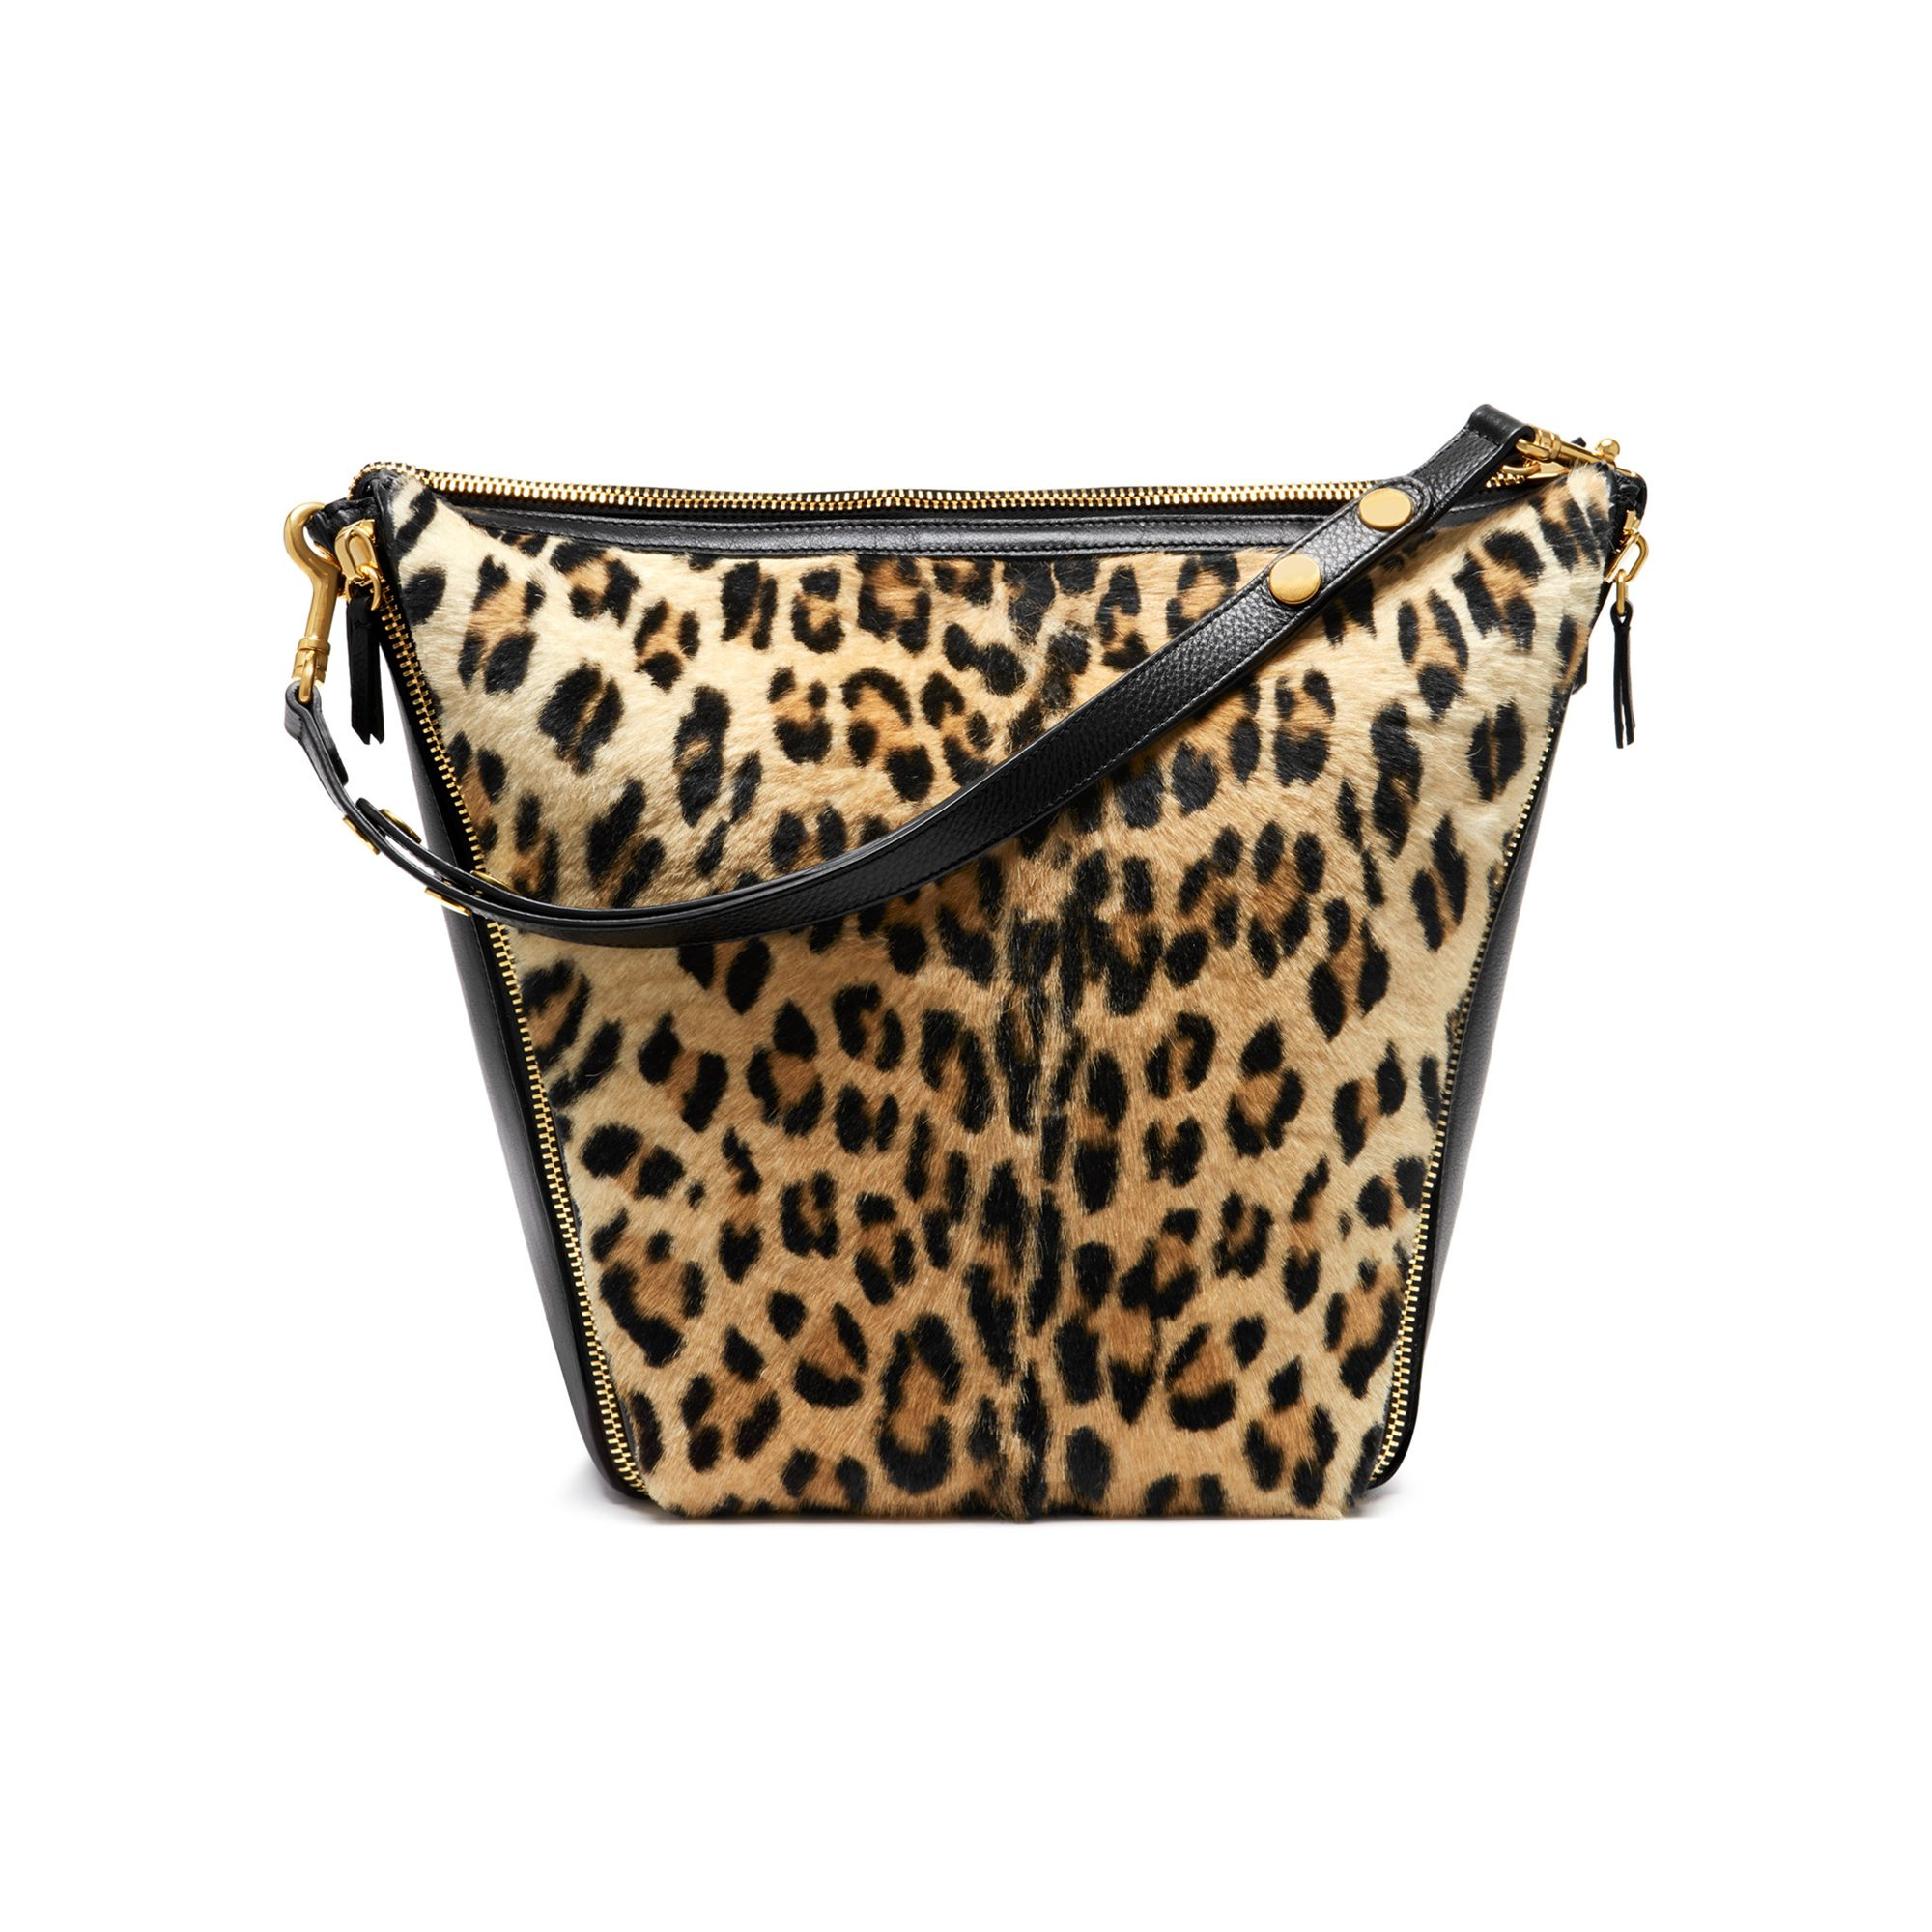 40e53ac7c146 Lyst - Mulberry Camden Leopard-Print Calf Hair And Leather Tote Bag ...